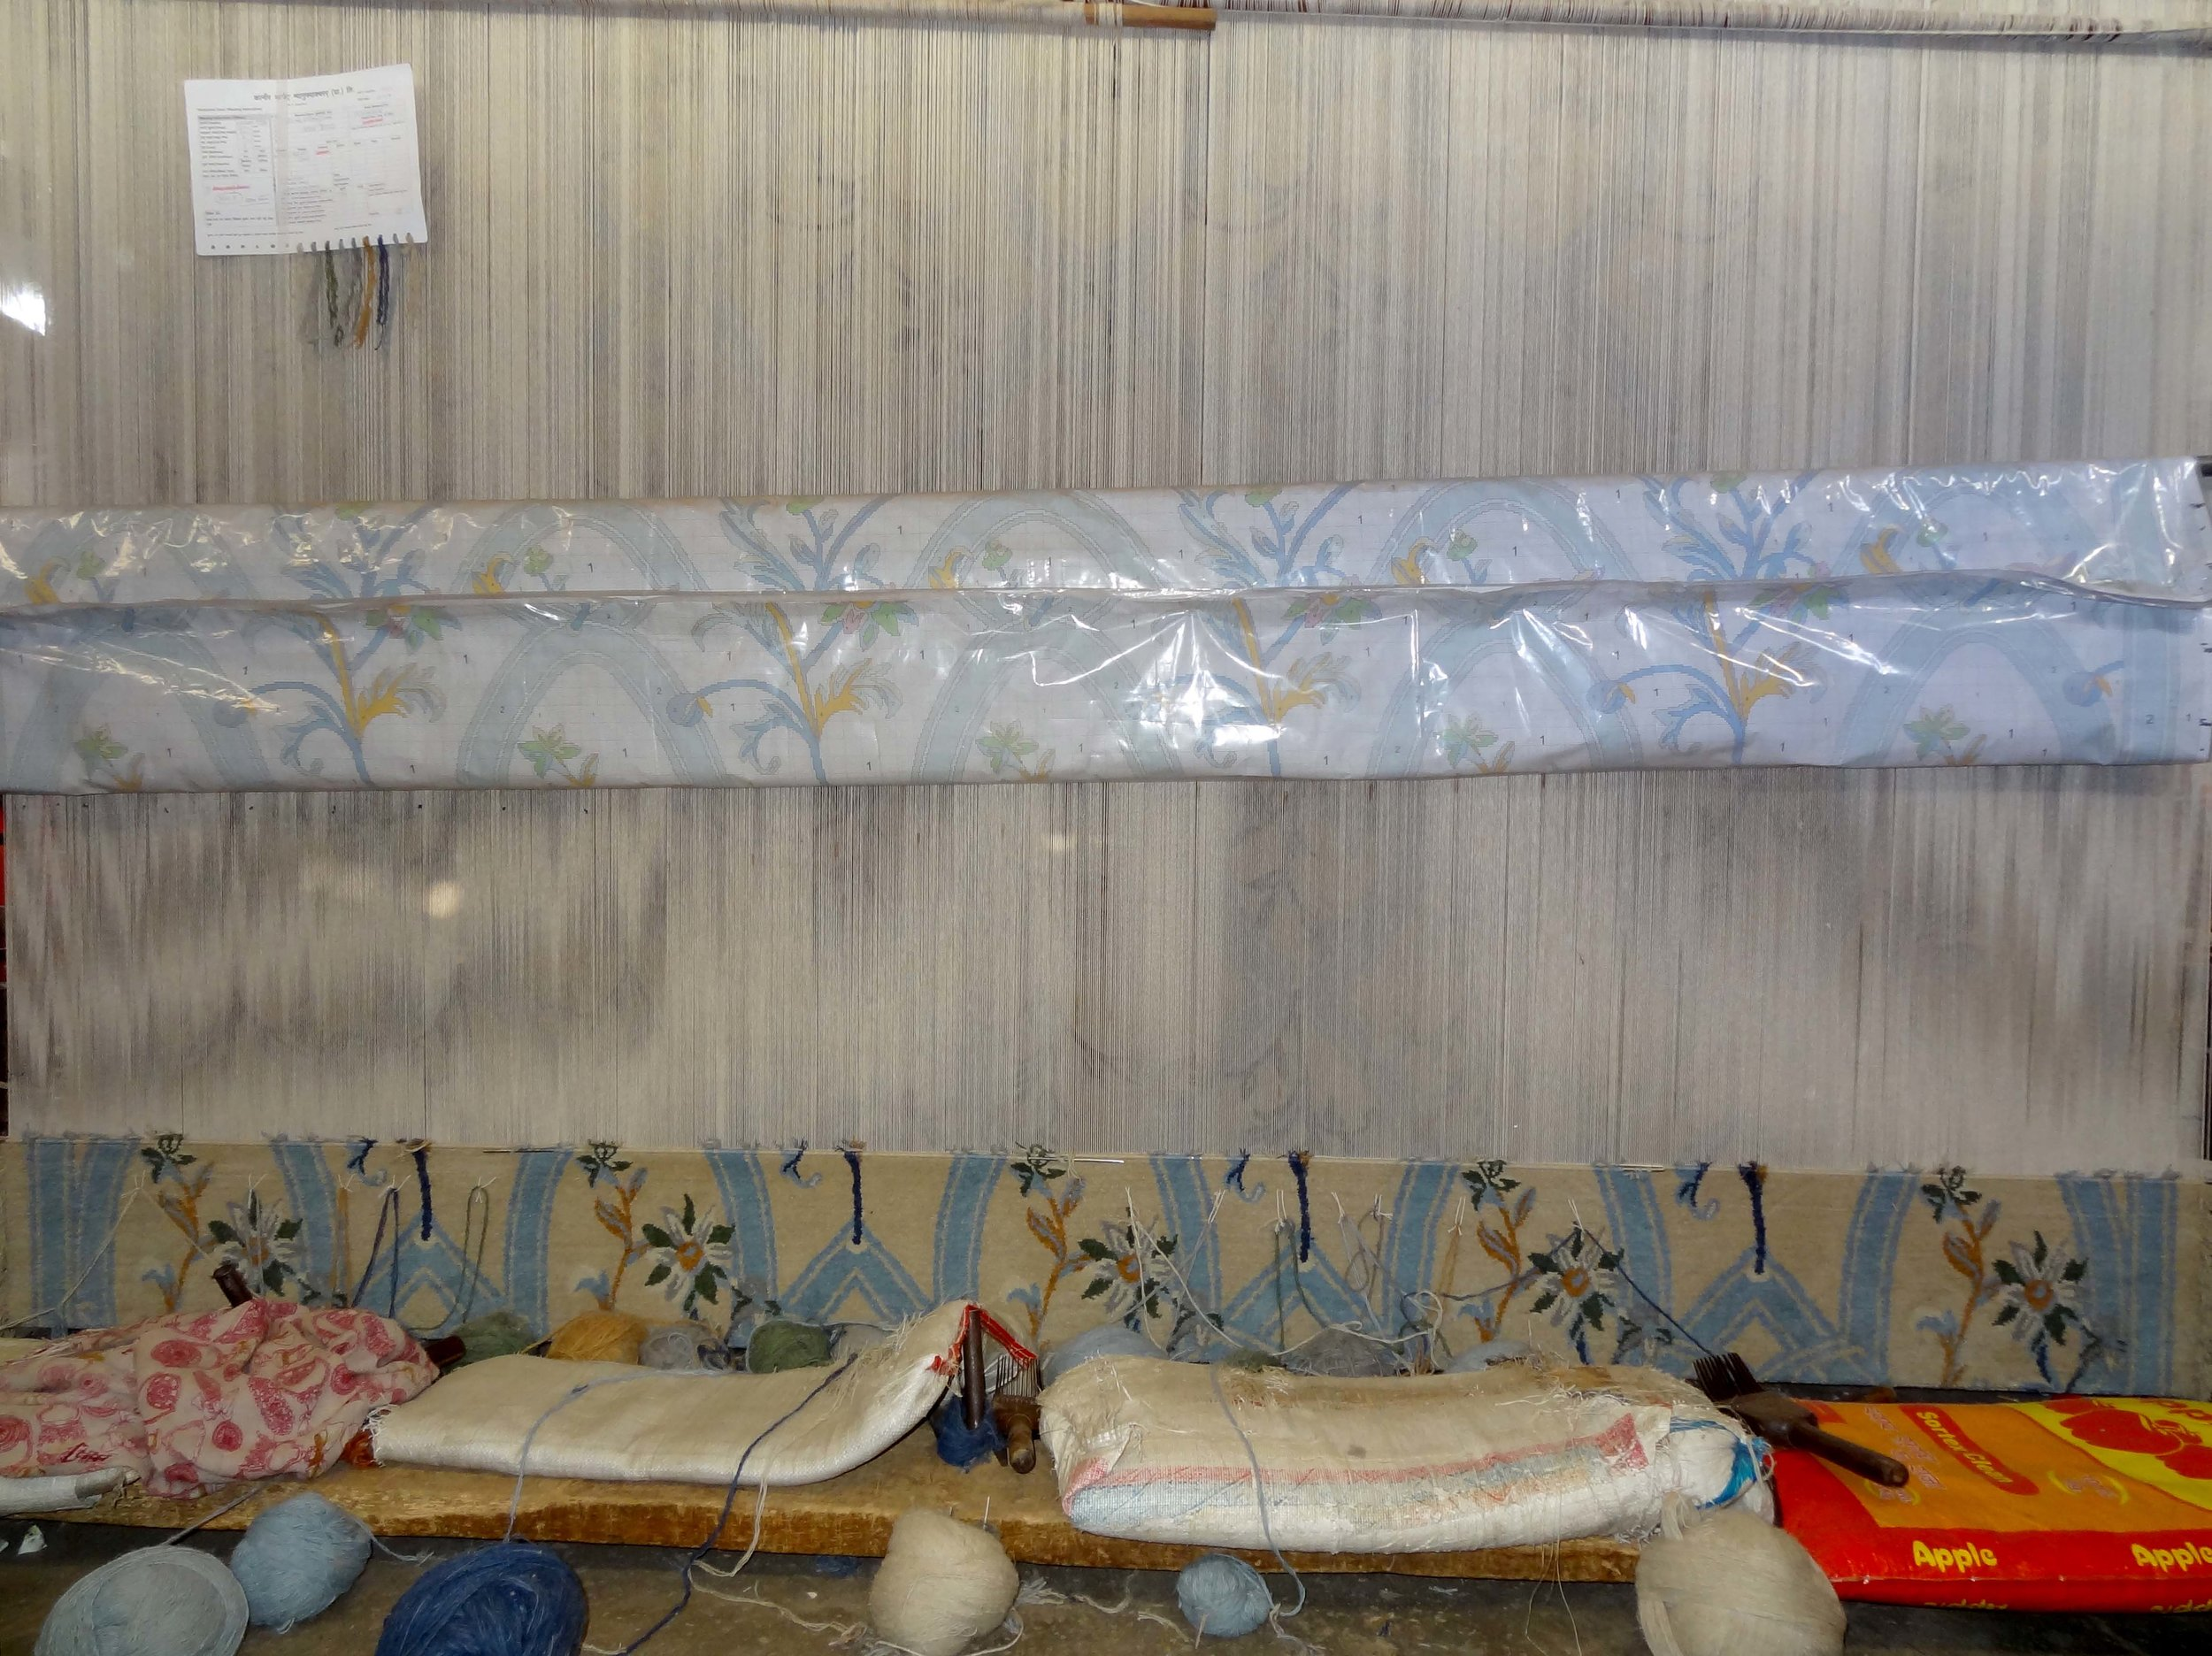 The rug is being woven on the loom, above this image is the sample that arrives first, to be approved and then production begins. All this starts with a sketch, then arrives as a fished rug. This rug was created for a home in Western Suburbs of Brisbane, it will finish the room perfectly.